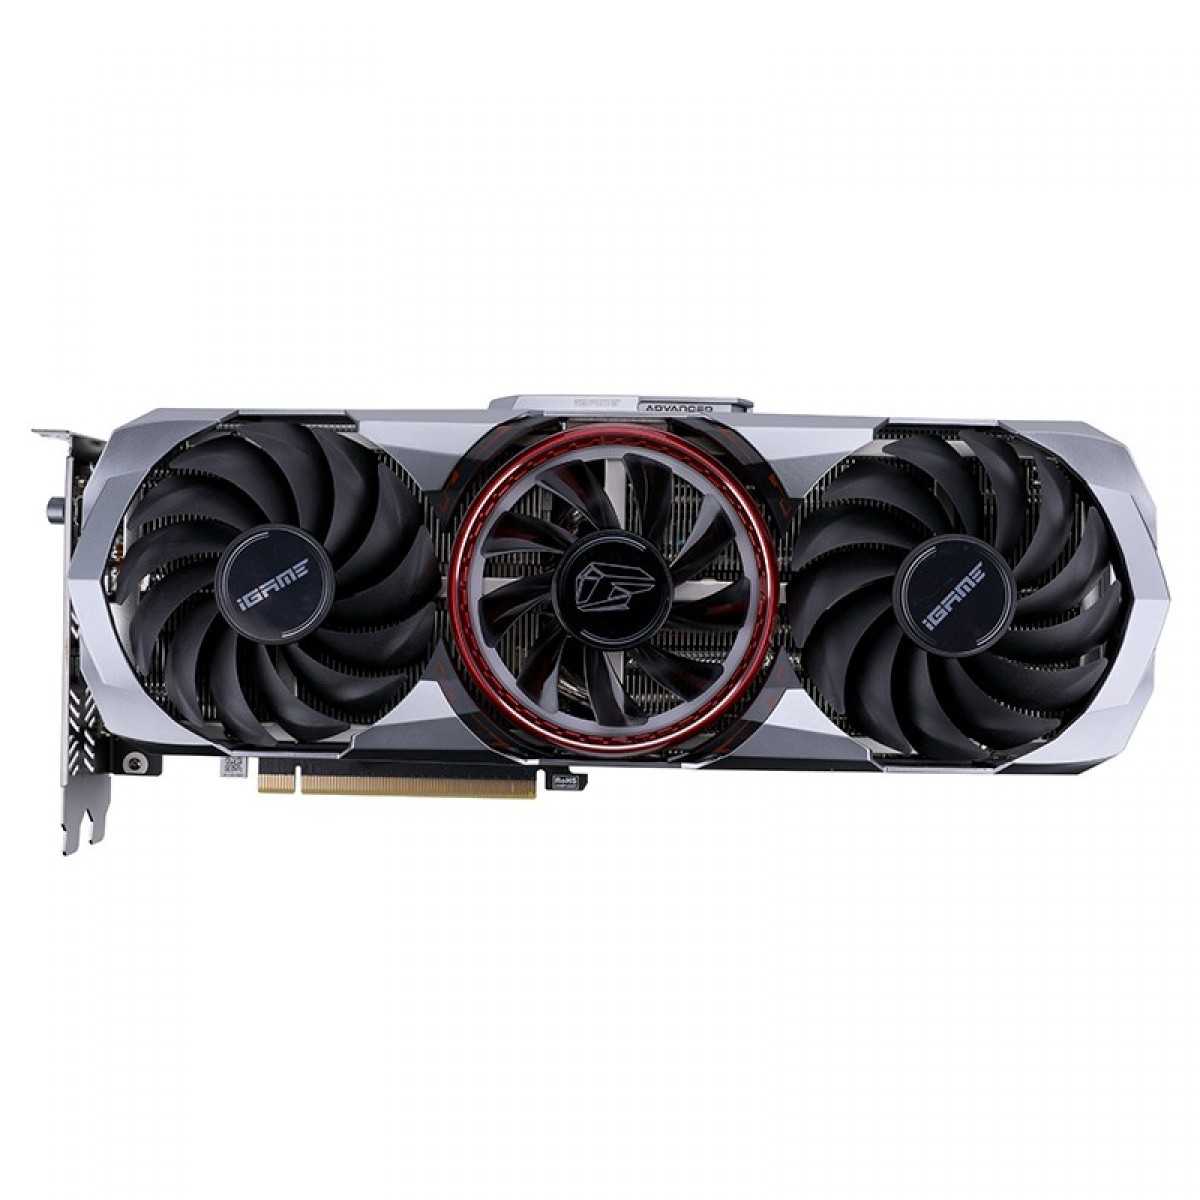 Placa de Vídeo Colorful, GeForce, iGame RTX 3060 Advanced OC-V, 12GB, GDDR6, 192Bit, 212326117808